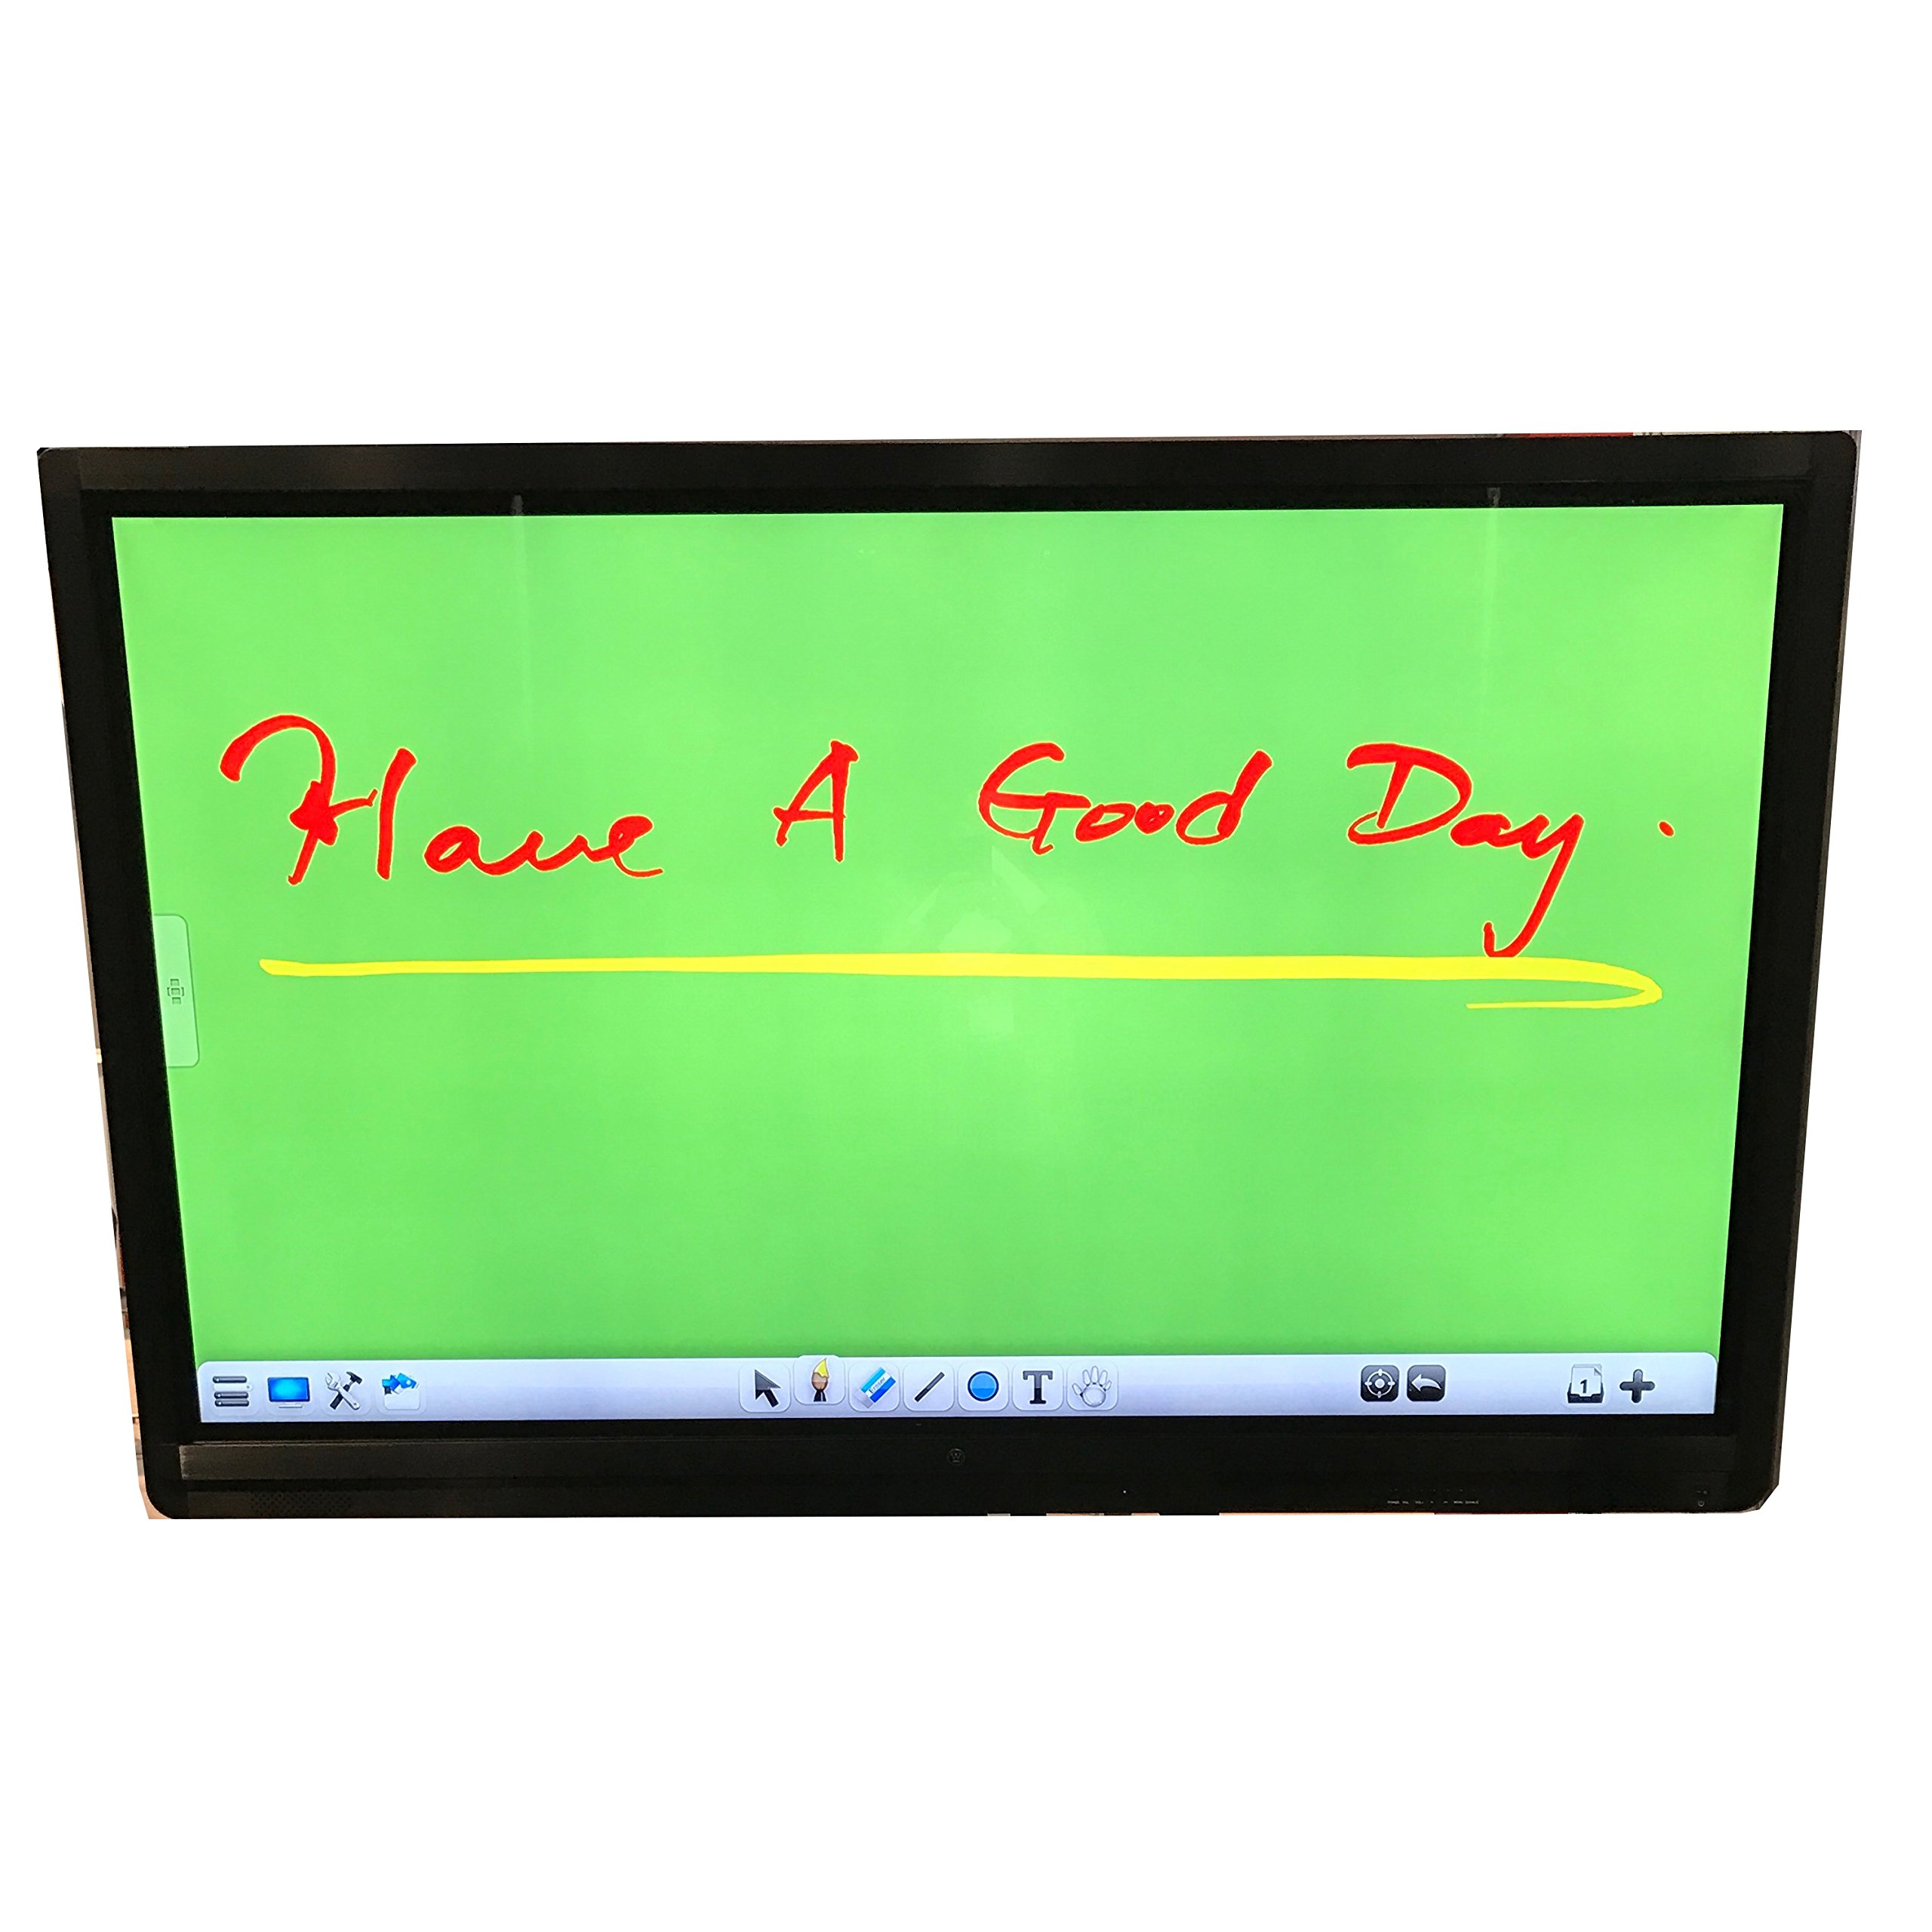 Westinghouse WB55F1D1 55FHDTOUCH SCREEN INTERACTIVE WHITEBOARD by Westinghouse